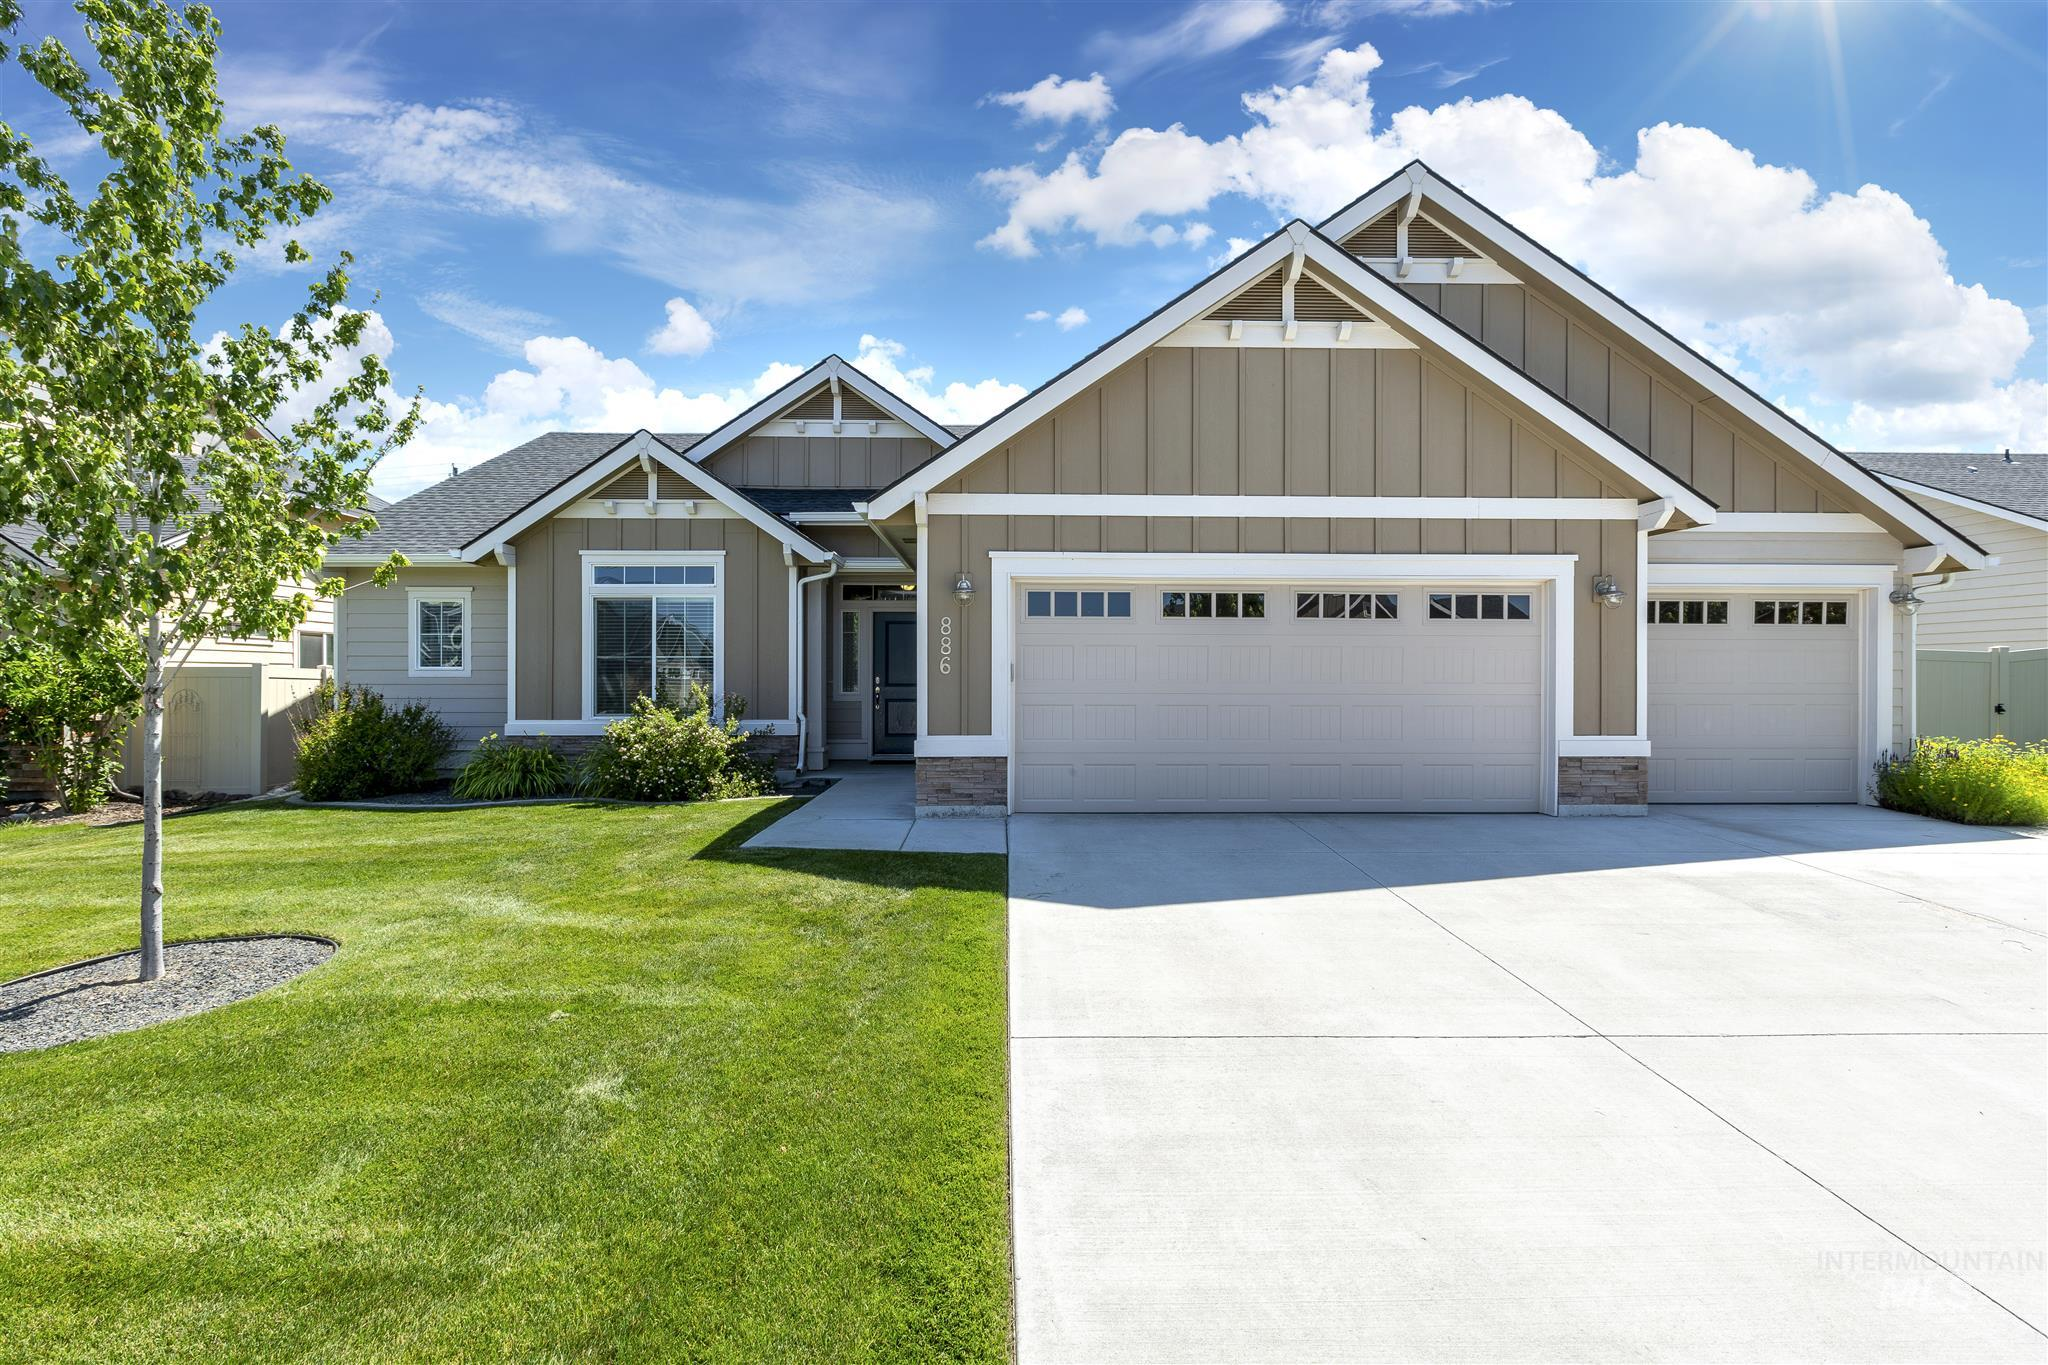 Photo for 886 N Cottage Cove, Star, ID 83669 (MLS # 98772849)